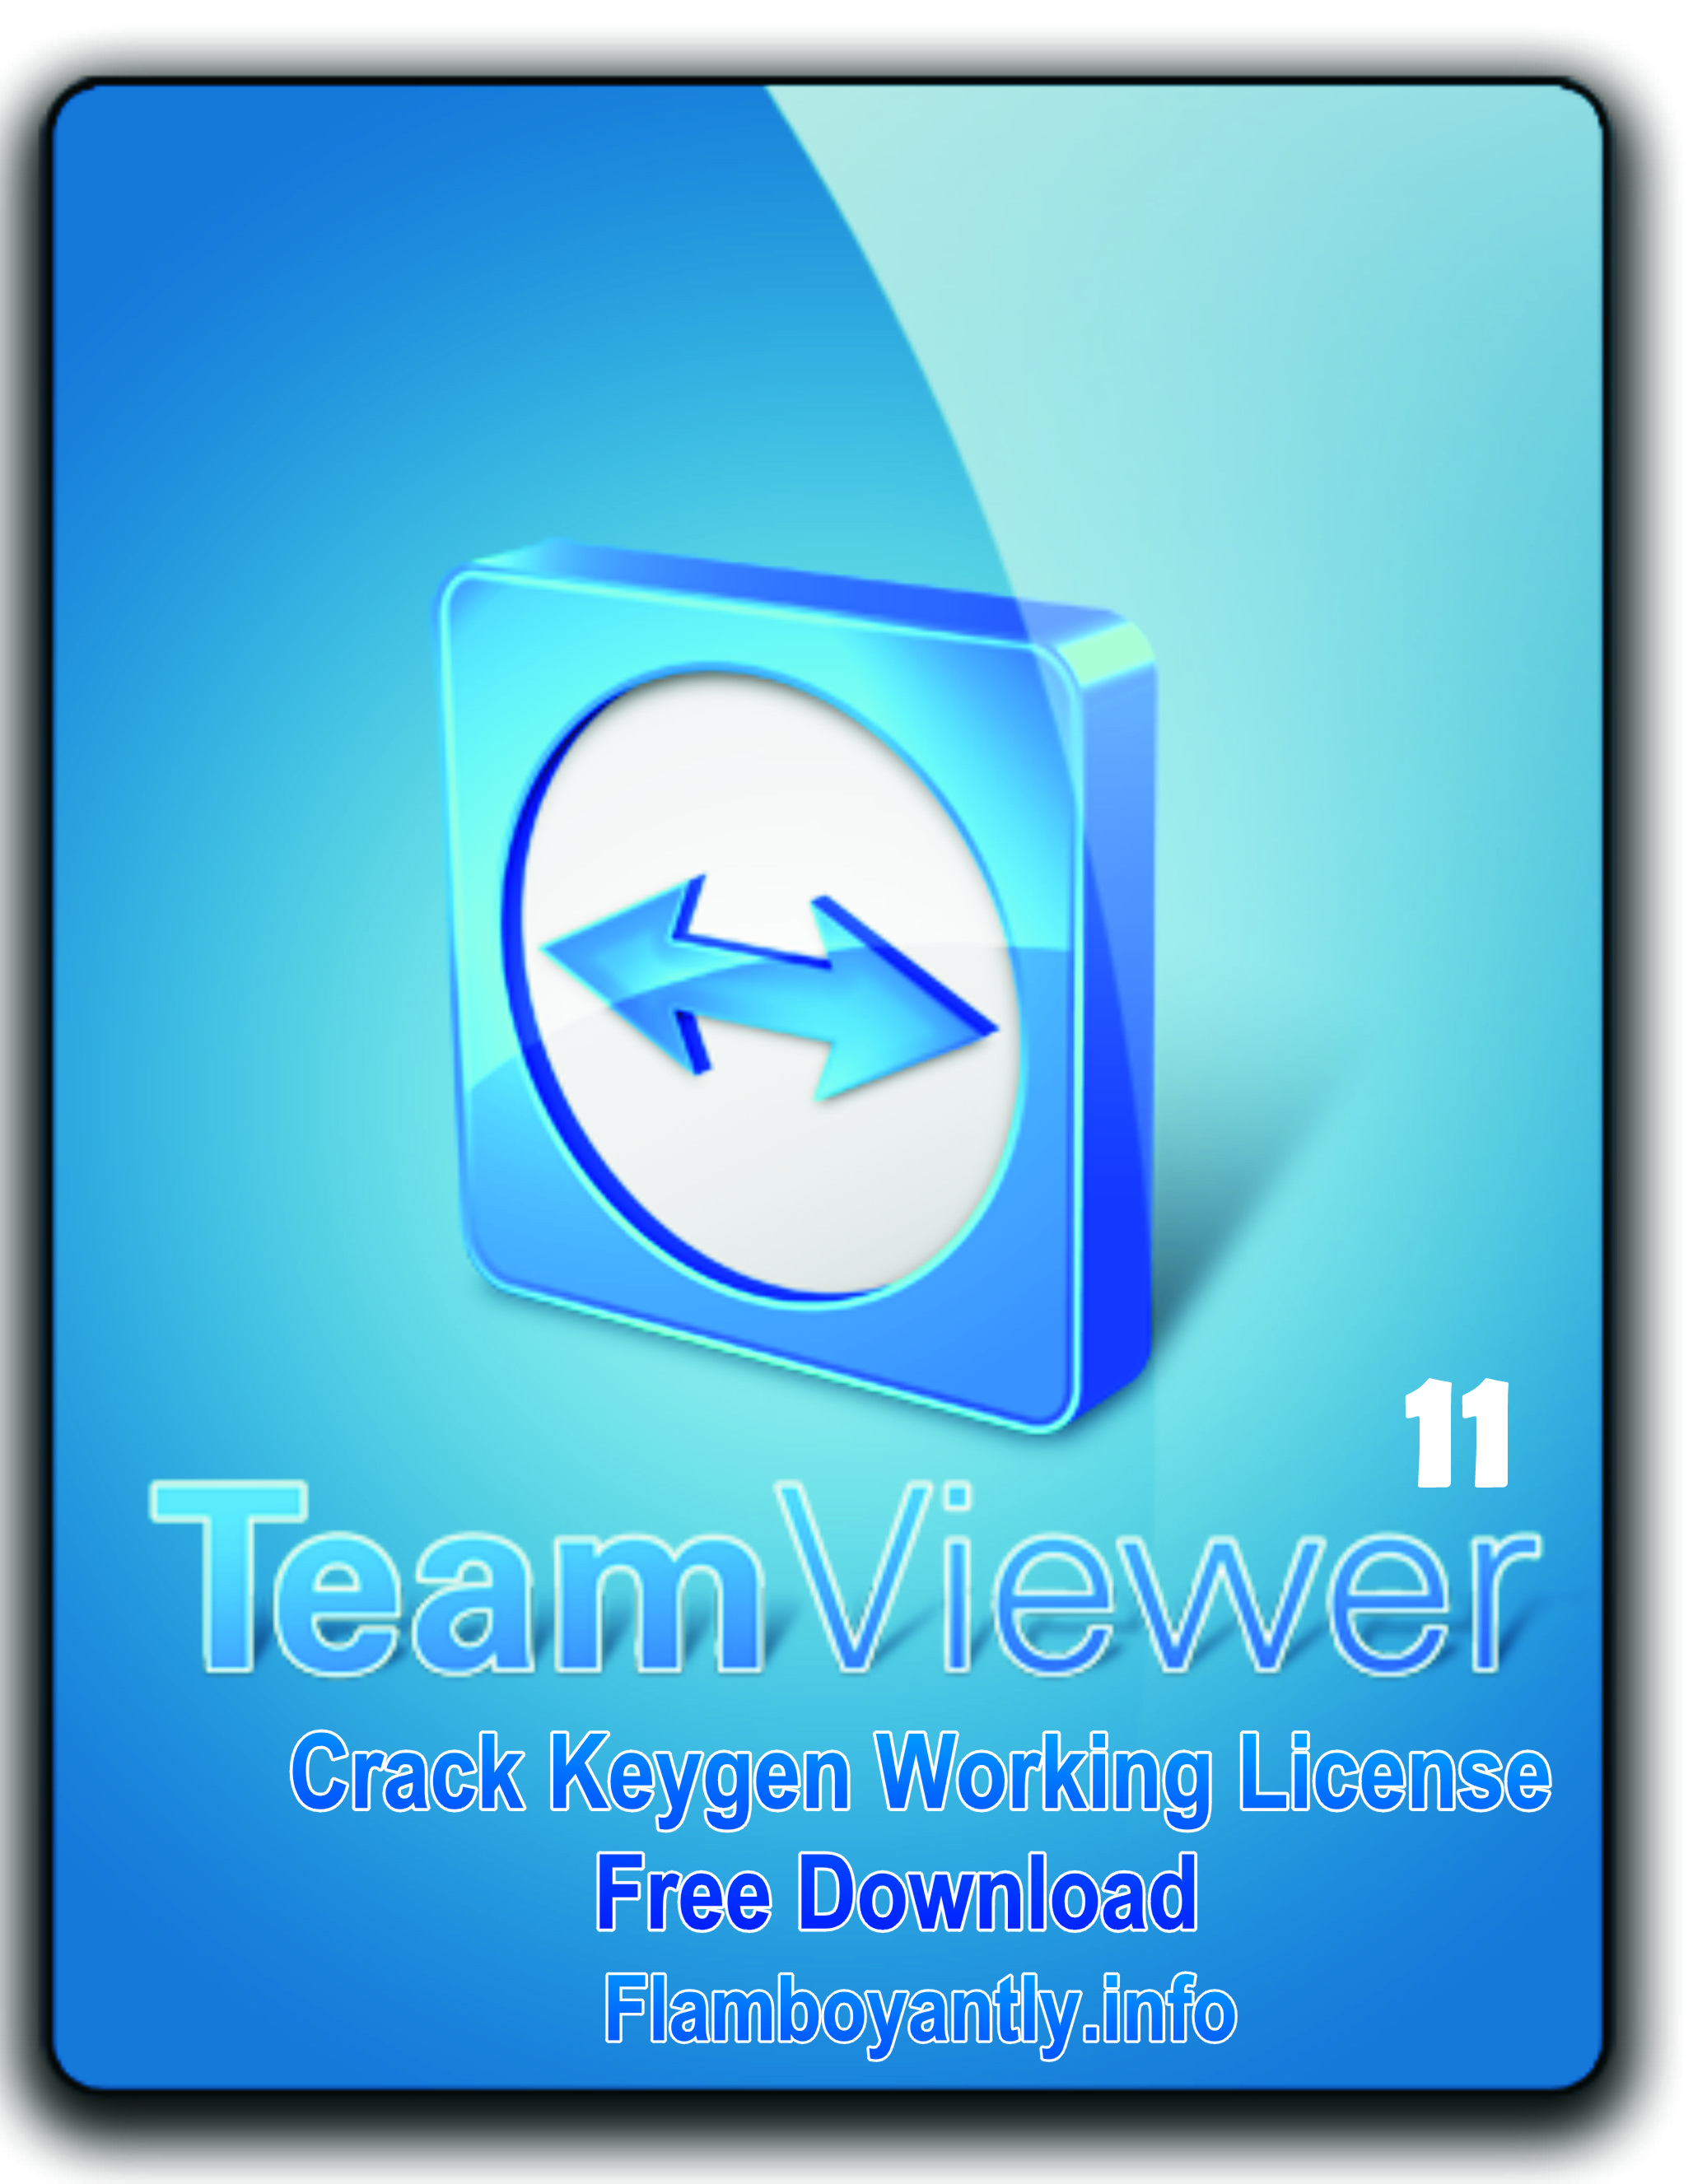 TeamViewer 11 Crack Keygen Working License Free Download